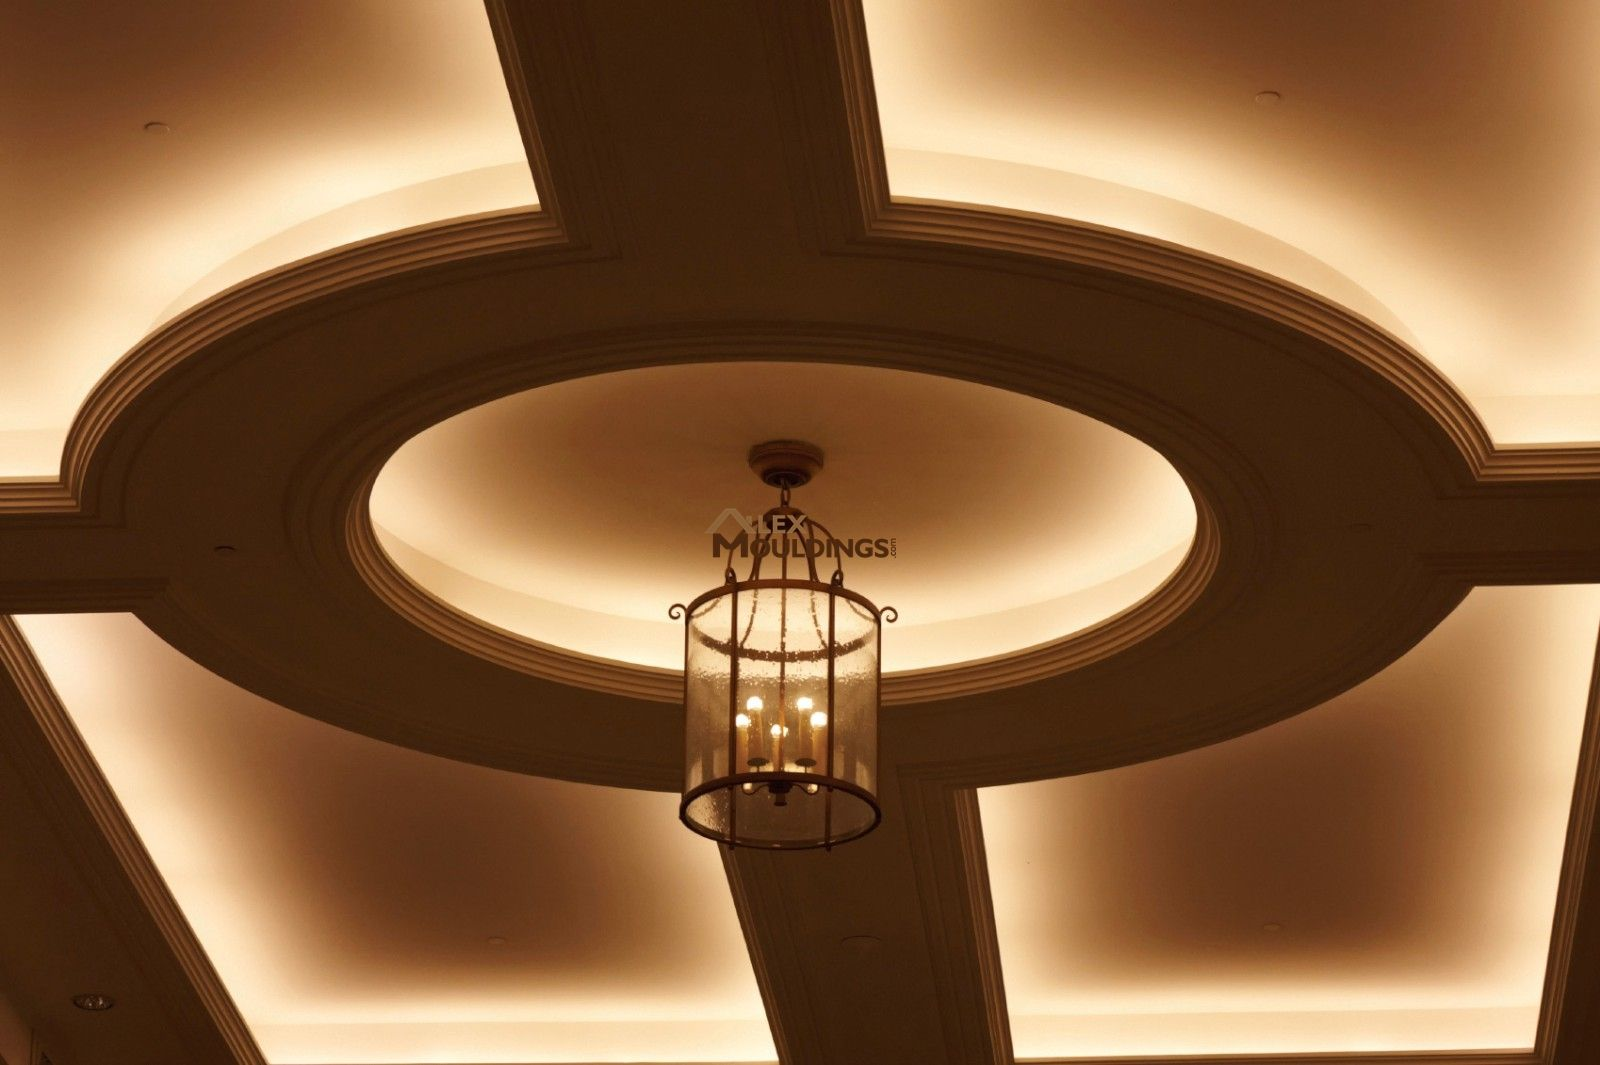 ceiling cove lighting. Circle With Cove Lighting On Ceiling Medalion E